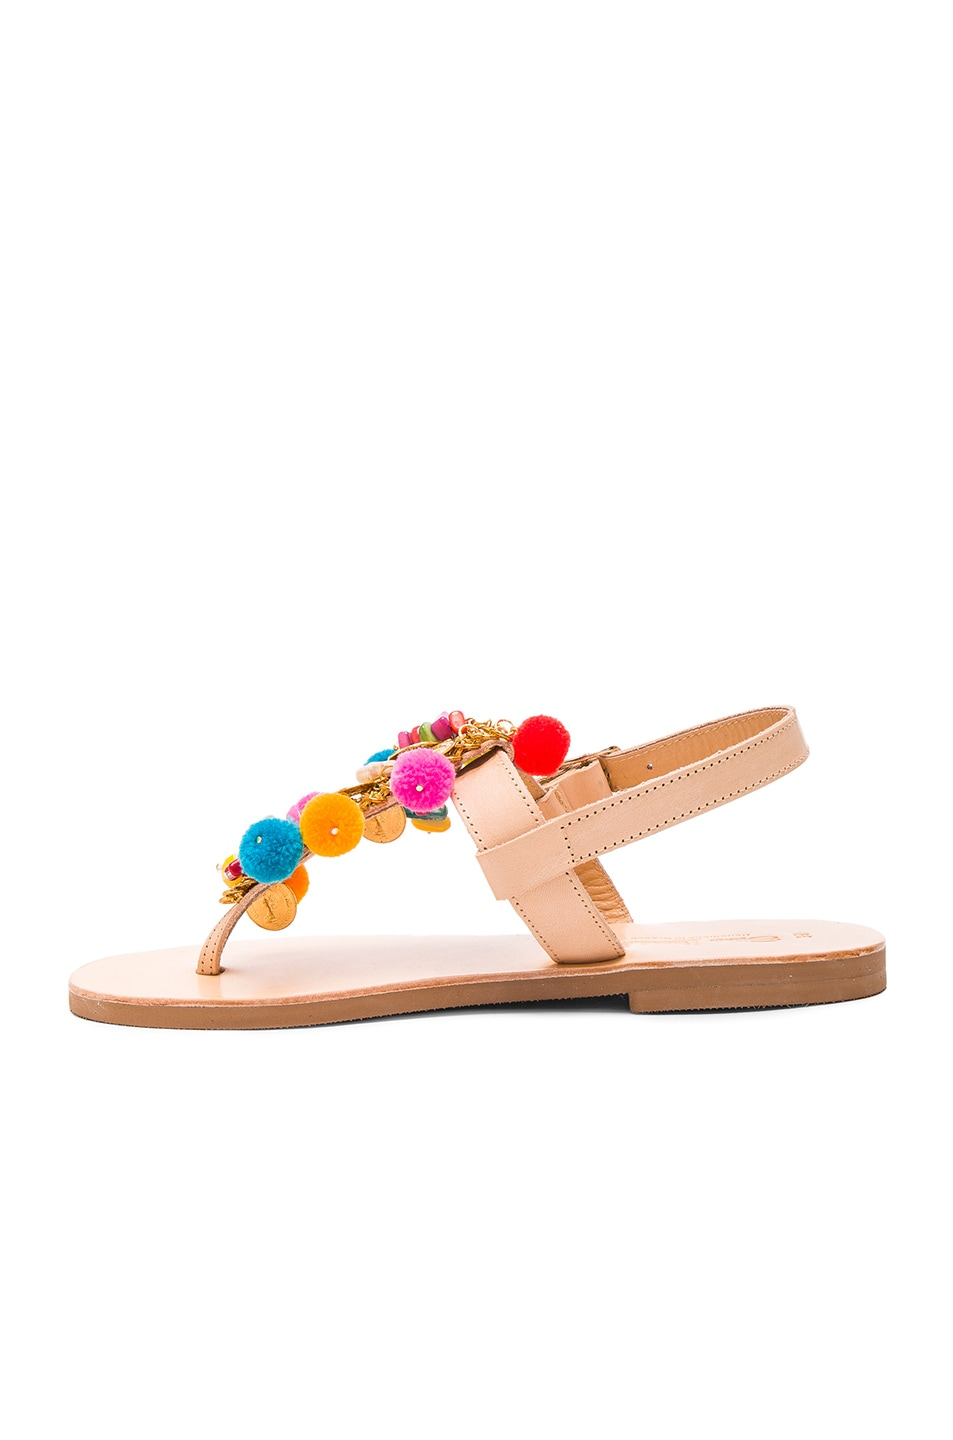 Image 5 of Elina Linardaki Leather Jelly Tots Sandals in Multi